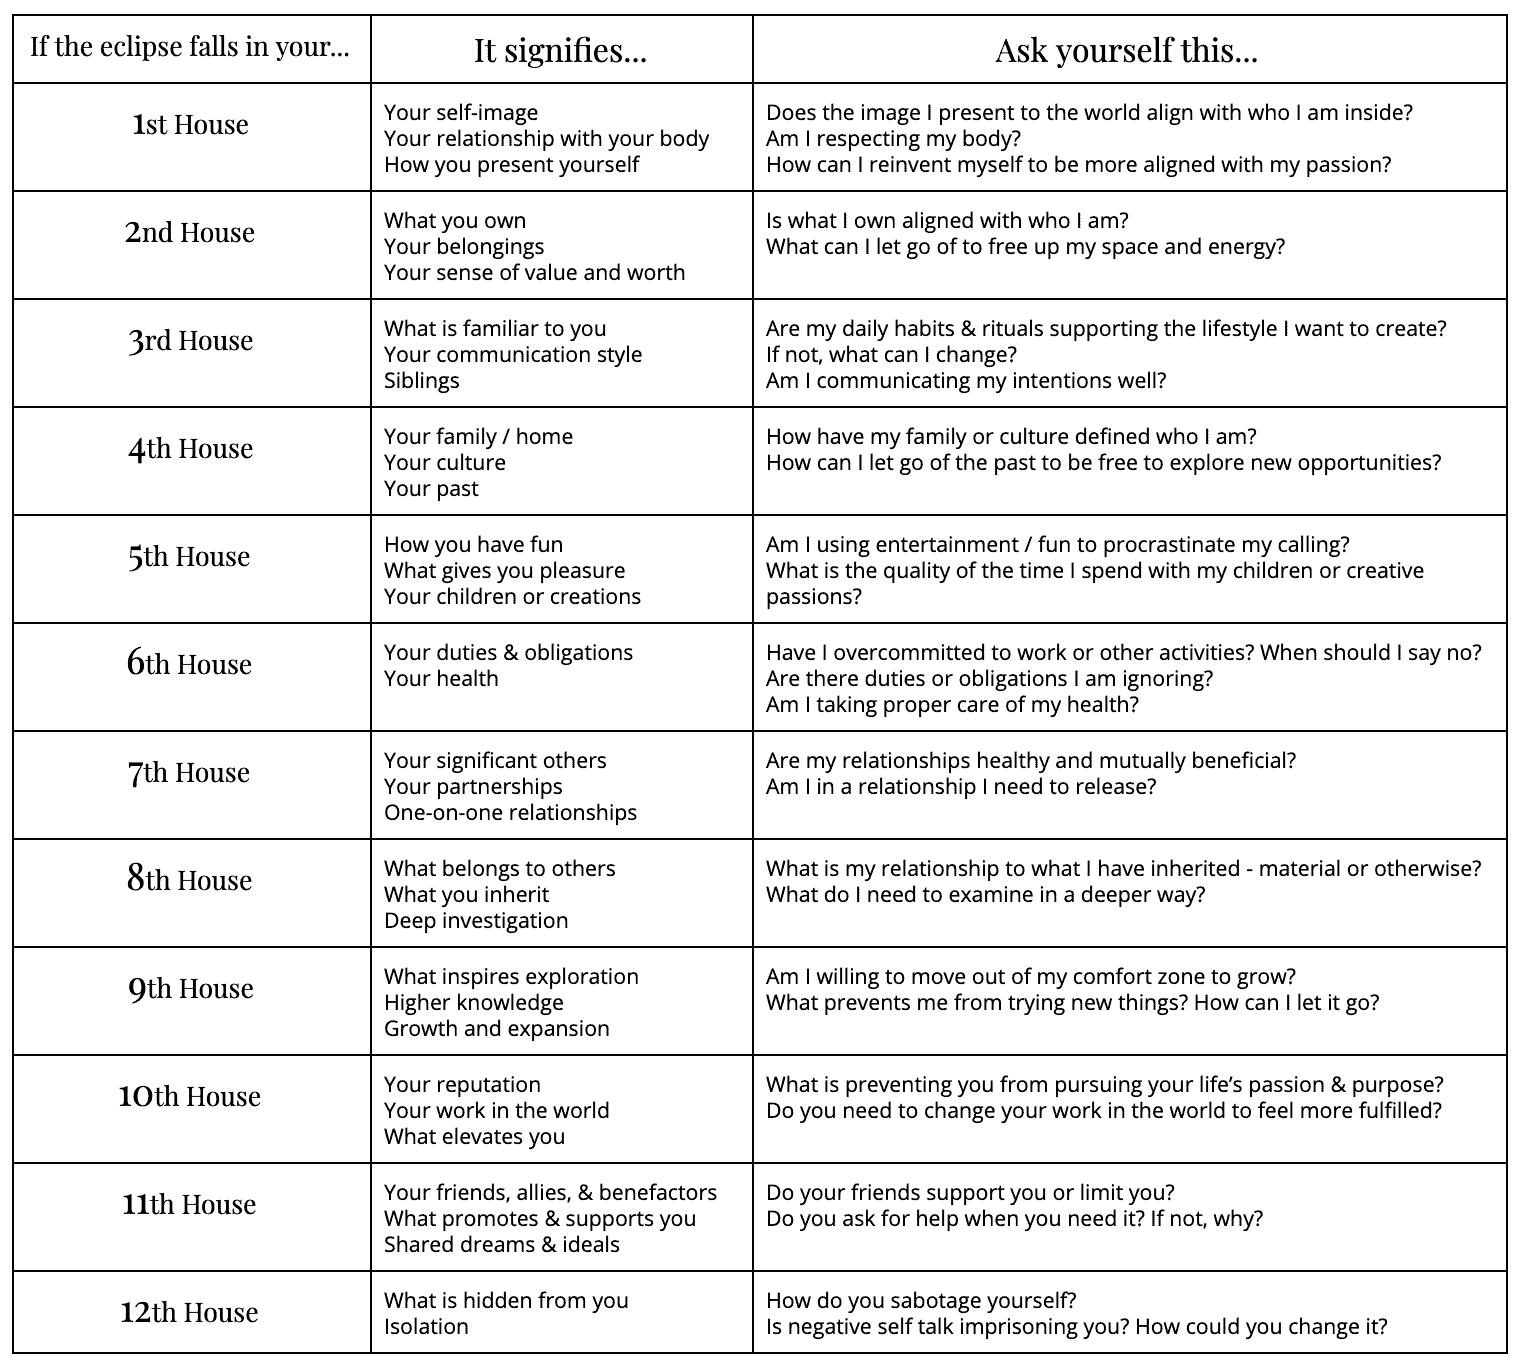 Eclipse Guide Chart